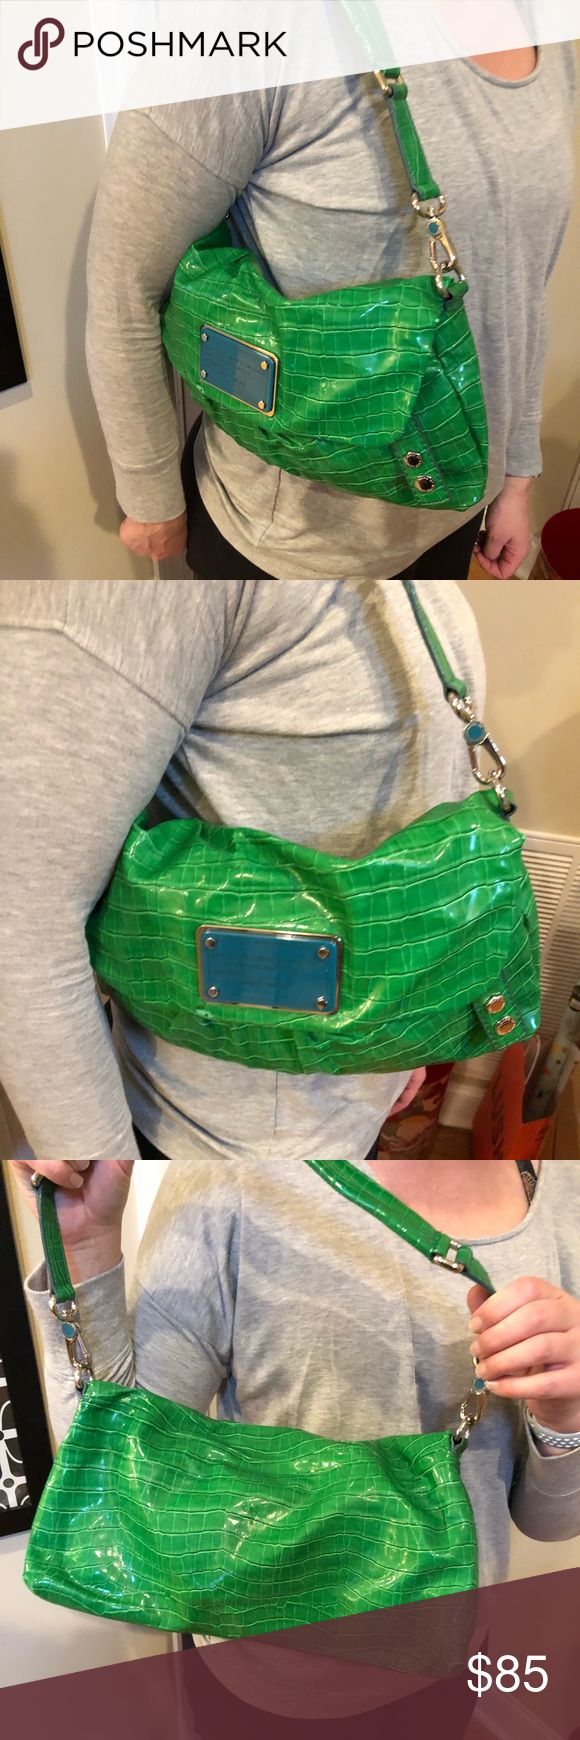 Marc by Marc Jacobs Green Shoulder Bag Purchased at Neiman Marcus several years ago. authentic Marc Jacobs bag, a bright Kelly green with blue accents. Adjustable strap, vinyl material, crocodile print. Marc By Marc Jacobs Bags Shoulder Bags